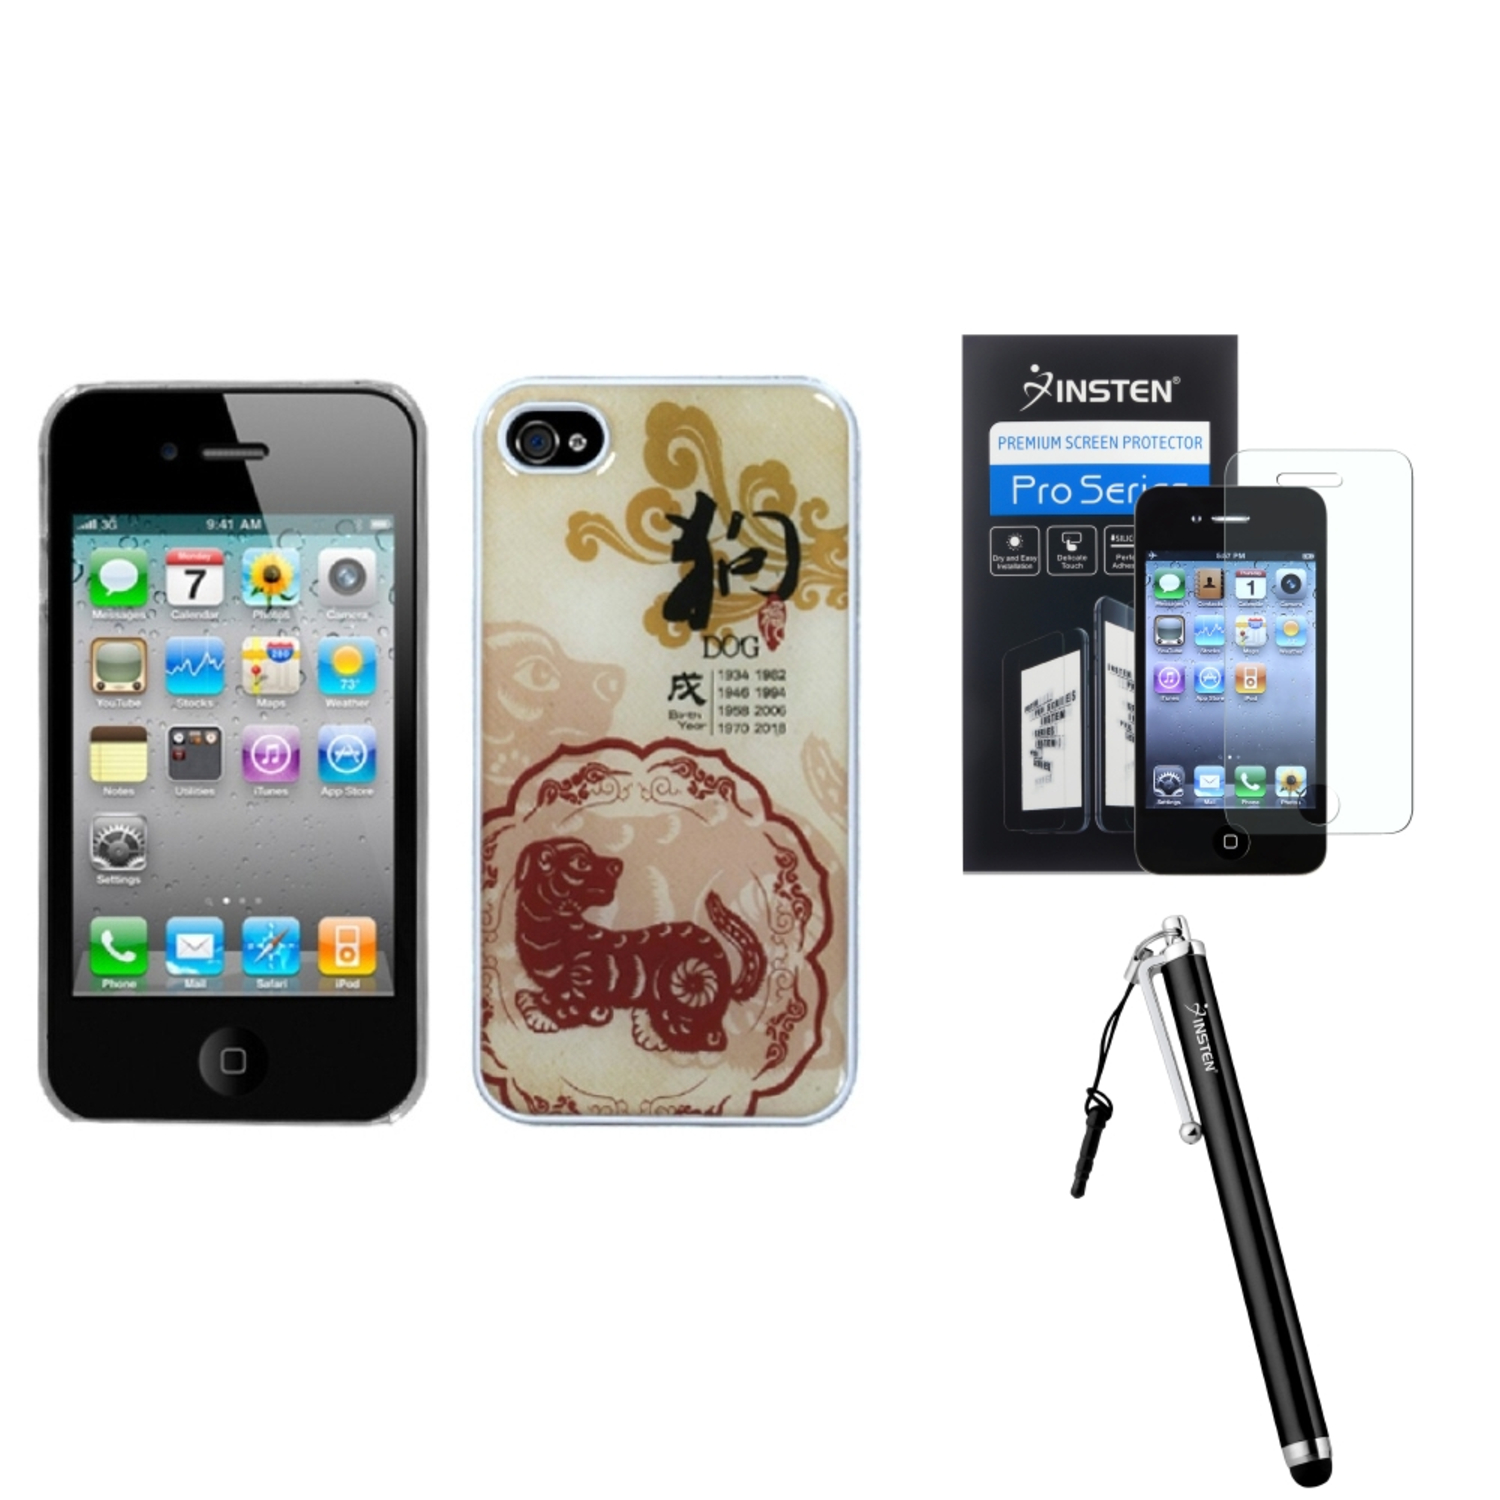 Insten Dog-Chinese Zodiac Collection Dream Back Case For iPhone 4 4S + Stylus + Screen Guard